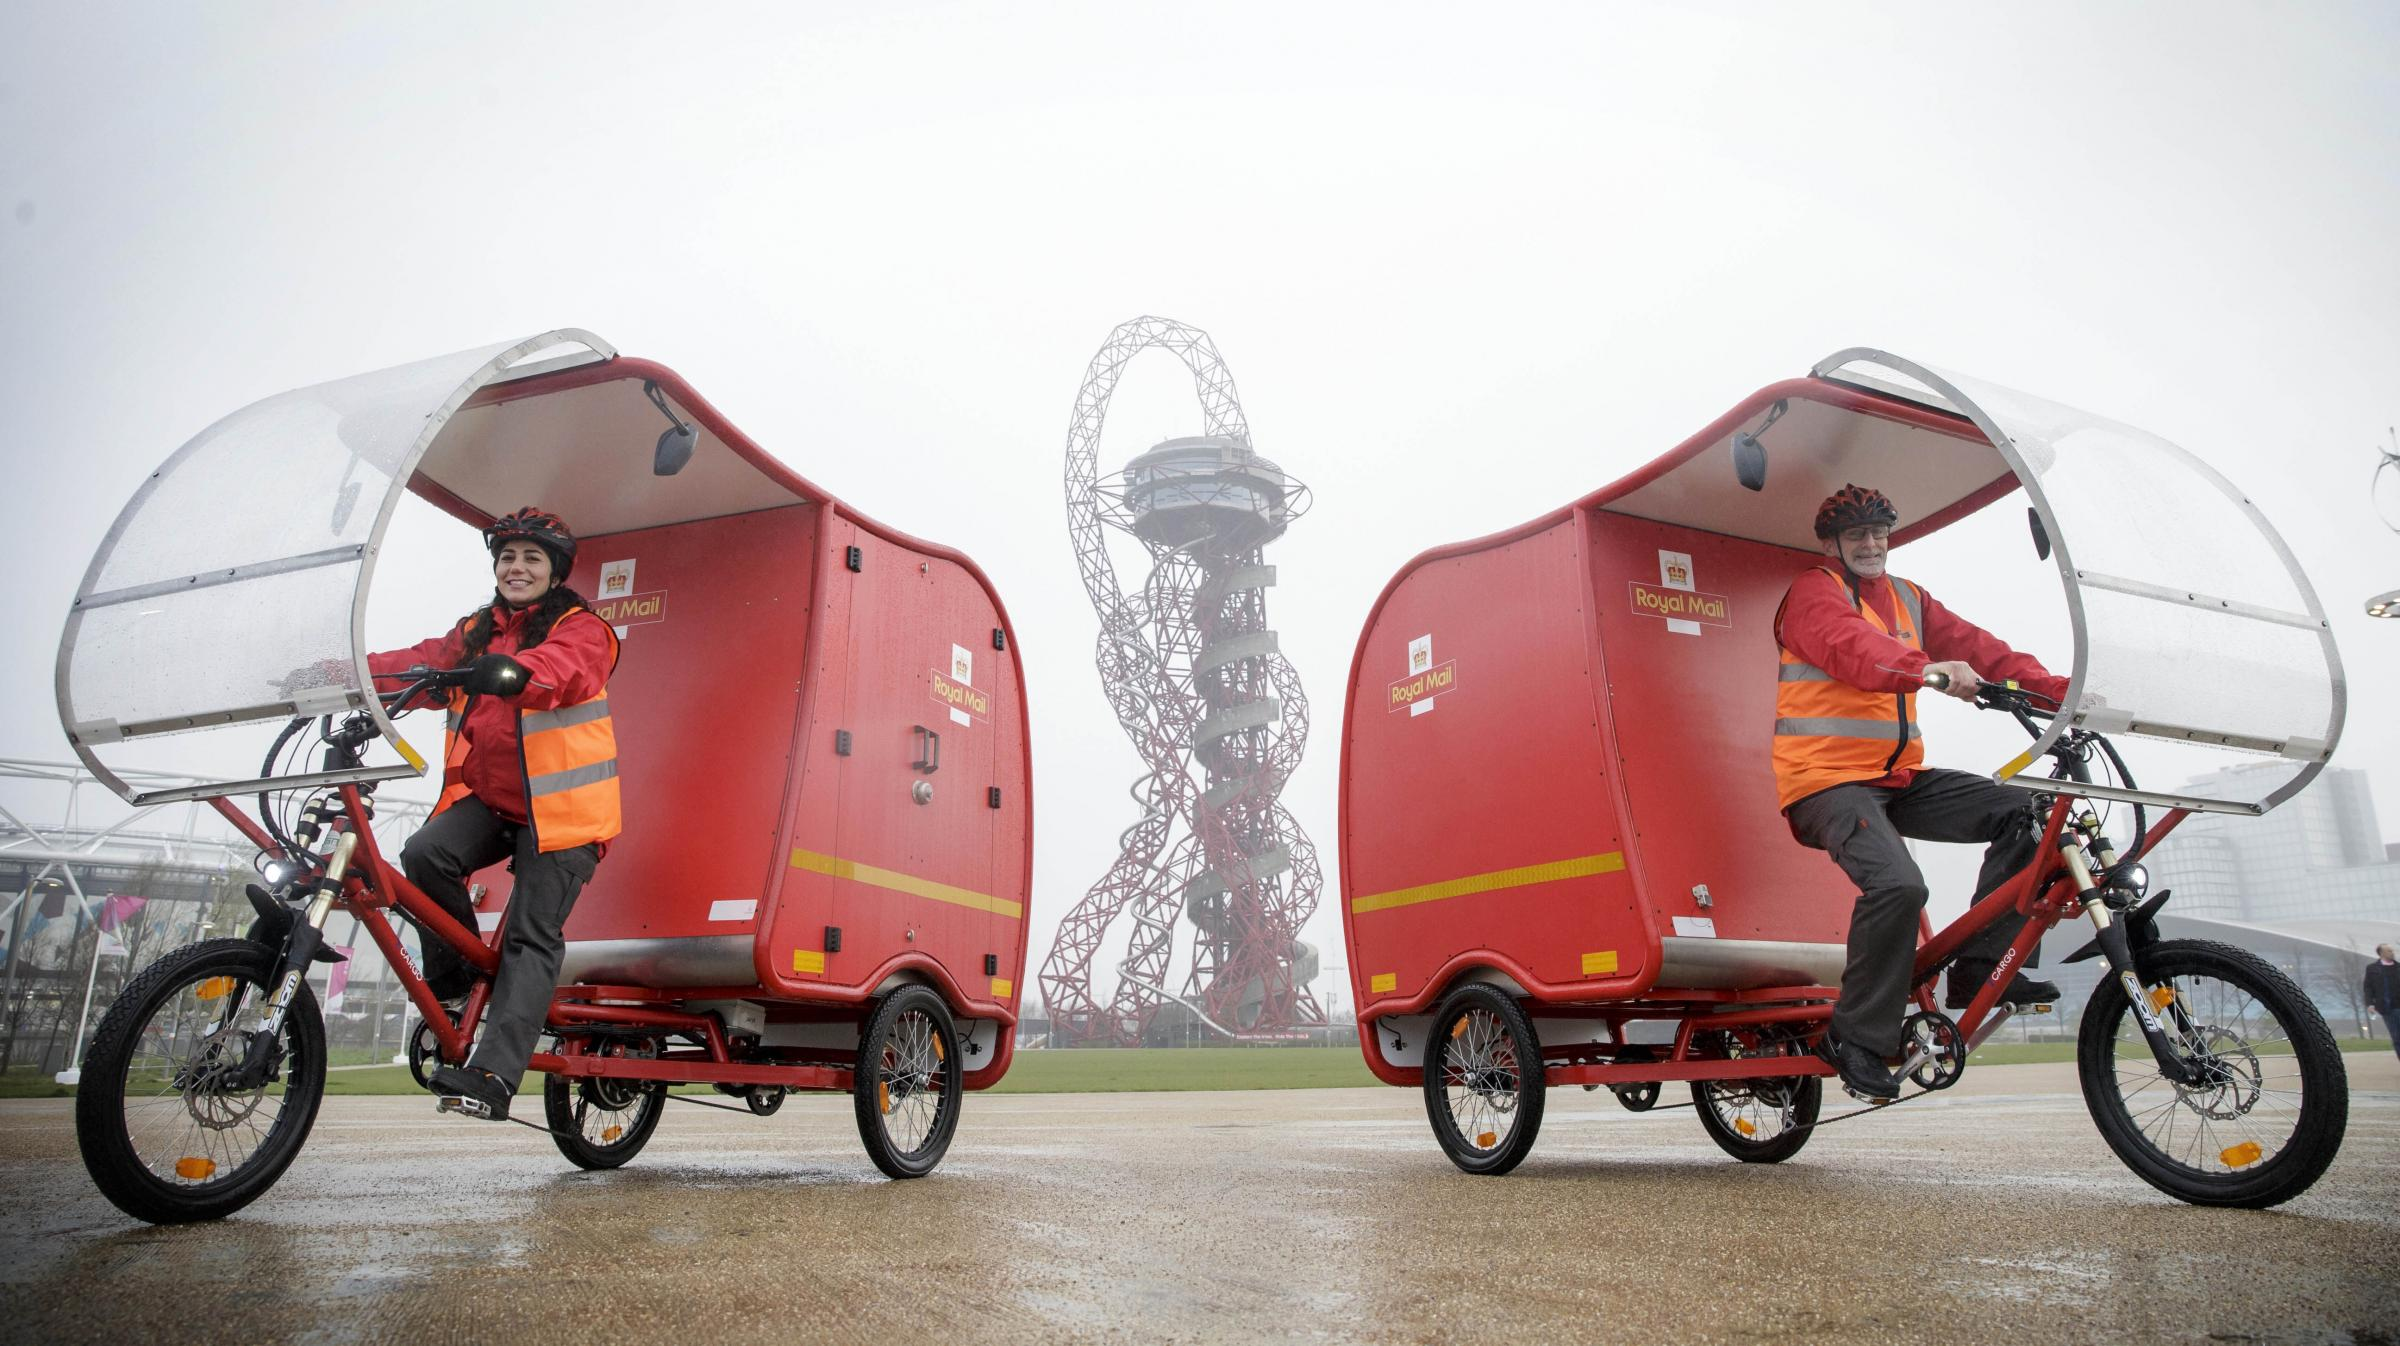 The Royal Mail is trialling solar-powered e-Trikes for deliveries